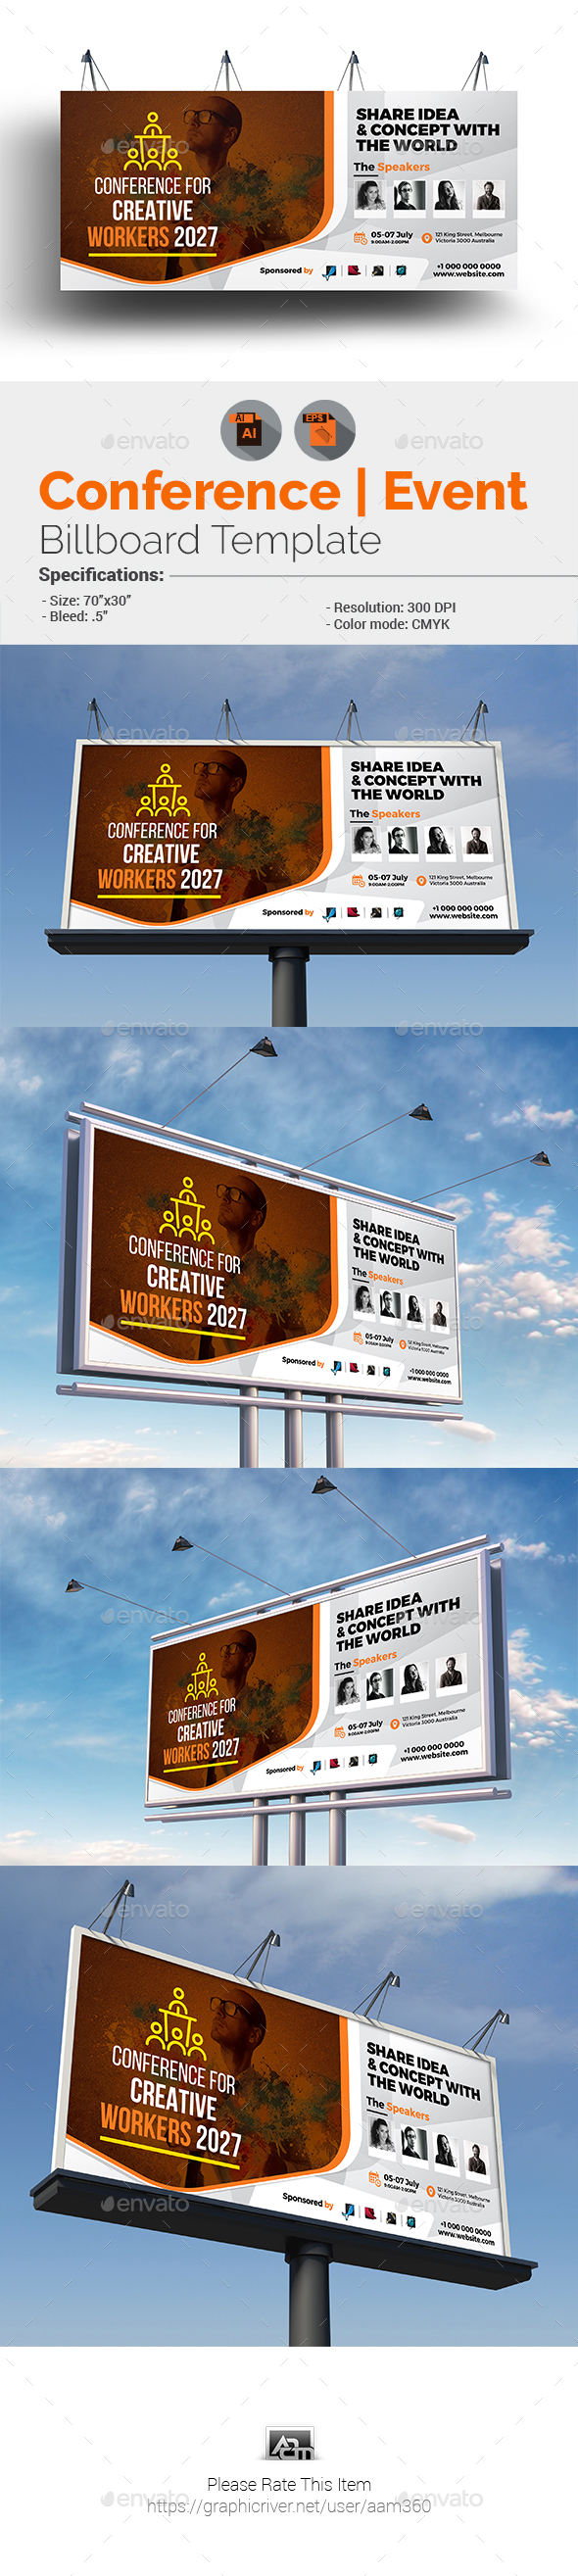 Conference / Event Billboard Template - Signage Print Templates